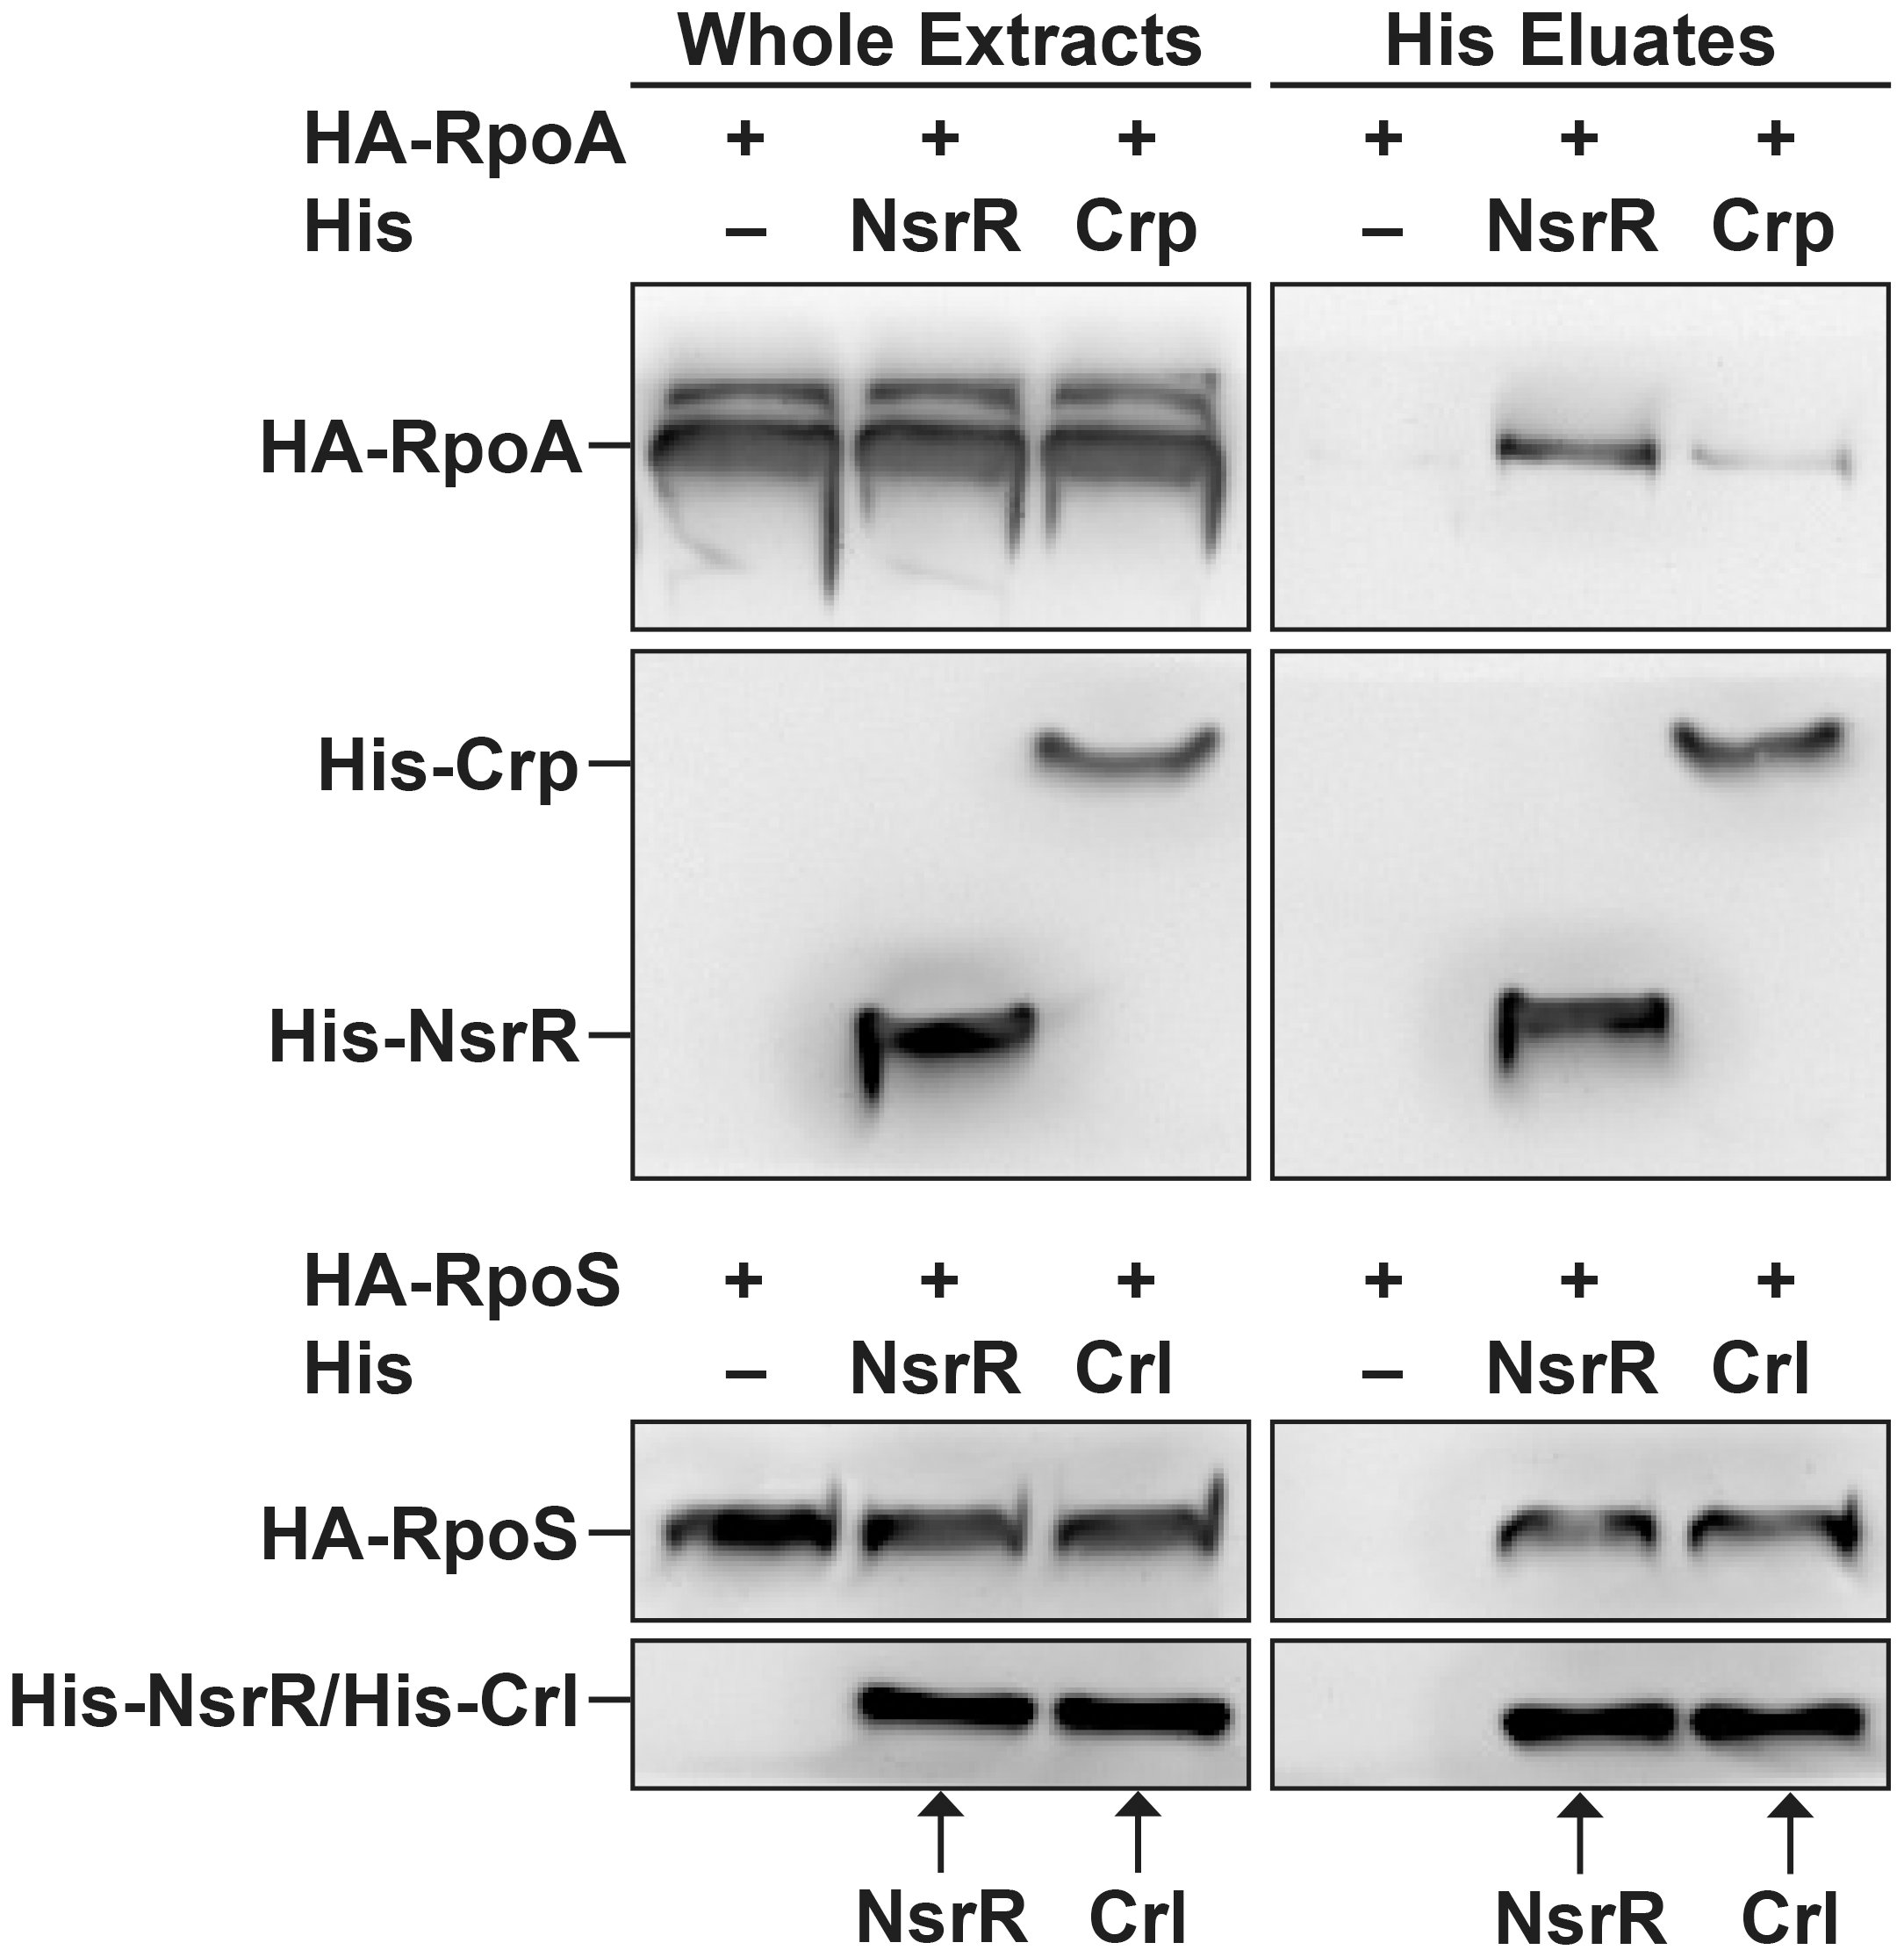 NsrR interacts with RNA polymerase complex.